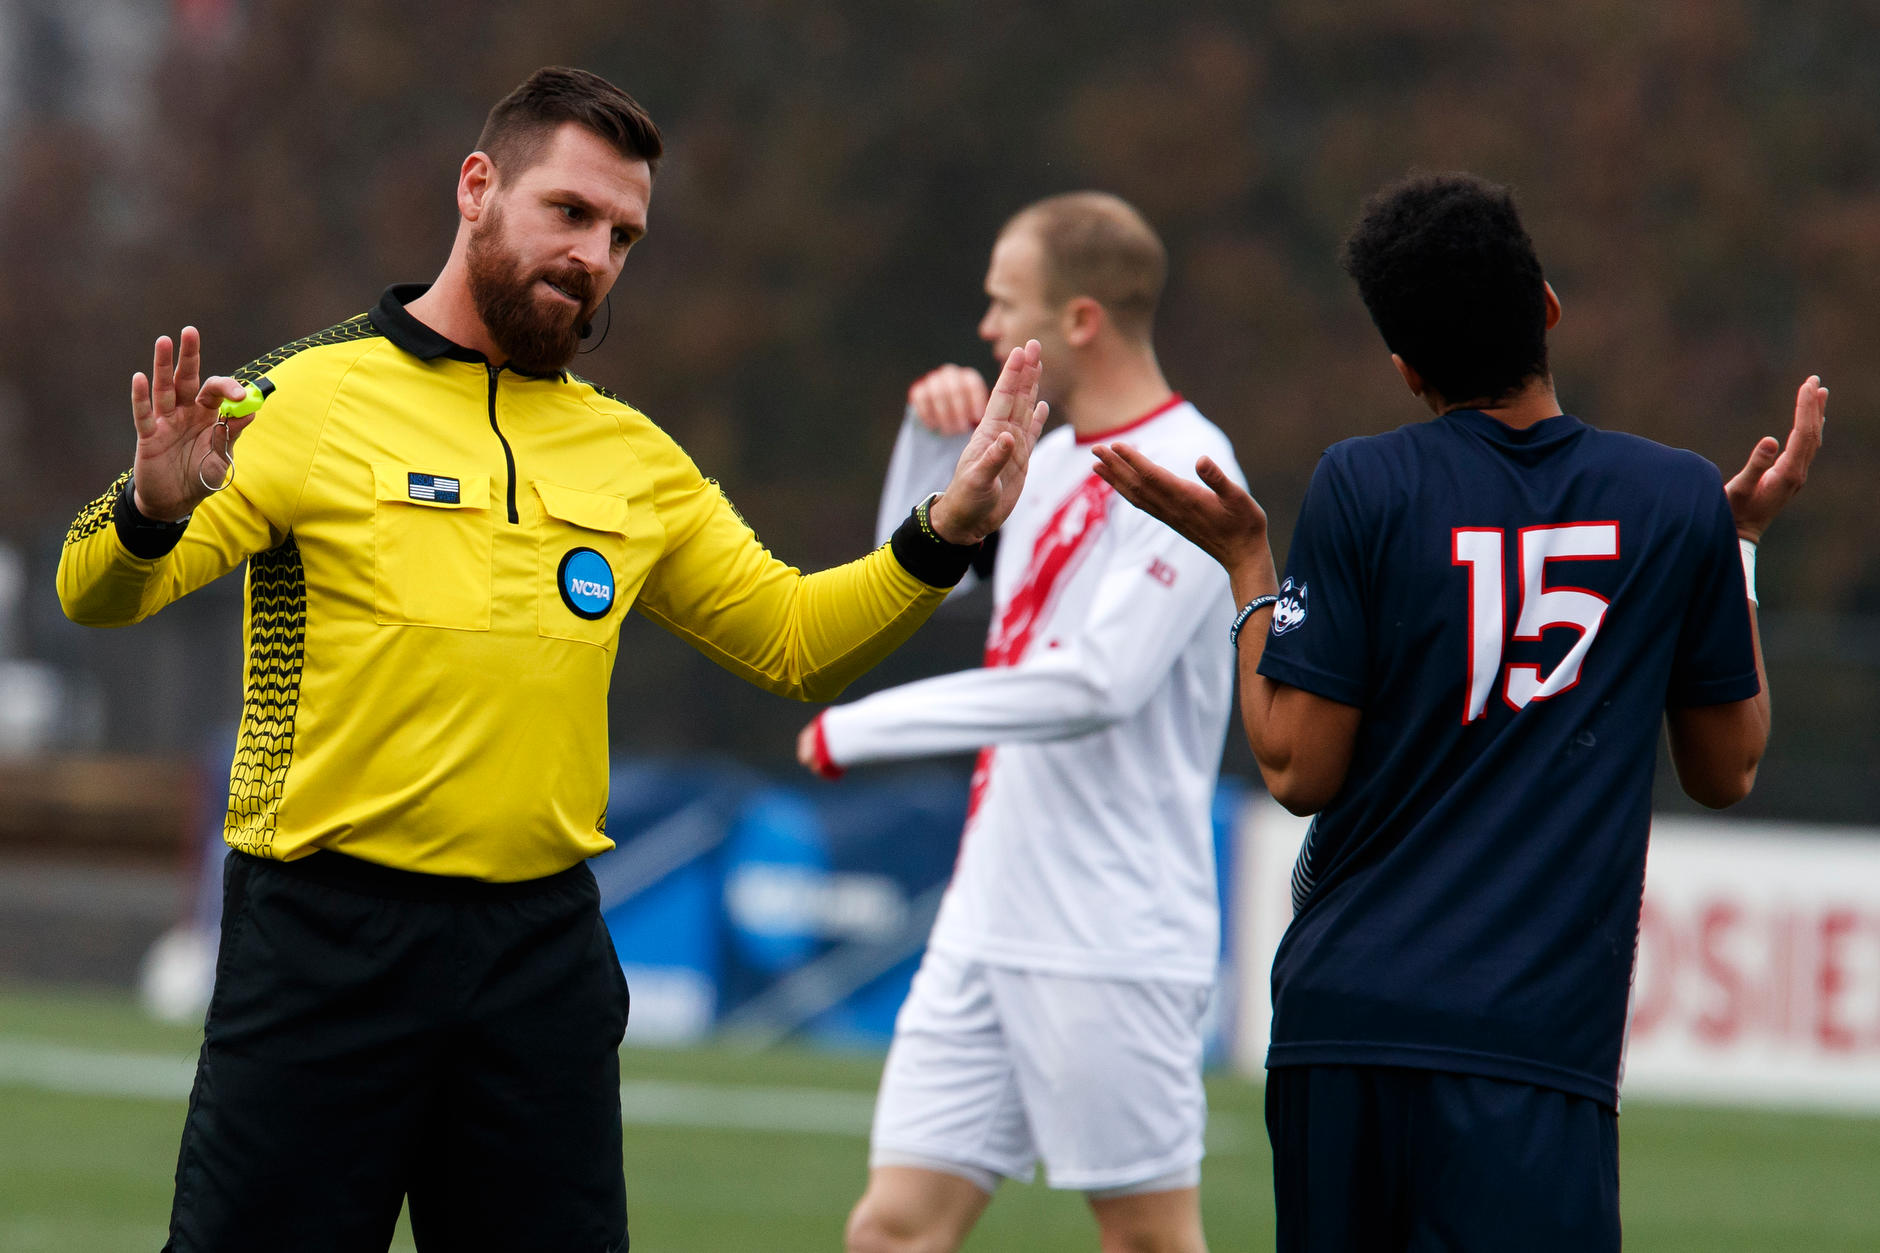 Referee Aaron Hernandez Connecticut's Cole Venner (15) during the second half of an NCAA men's soccer tournament match at Bill Armstrong Stadium in Bloomington, Ind. on Sunday, Nov. 18, 2018. IU won 4-0. (James Brosher for The Herald-Times)